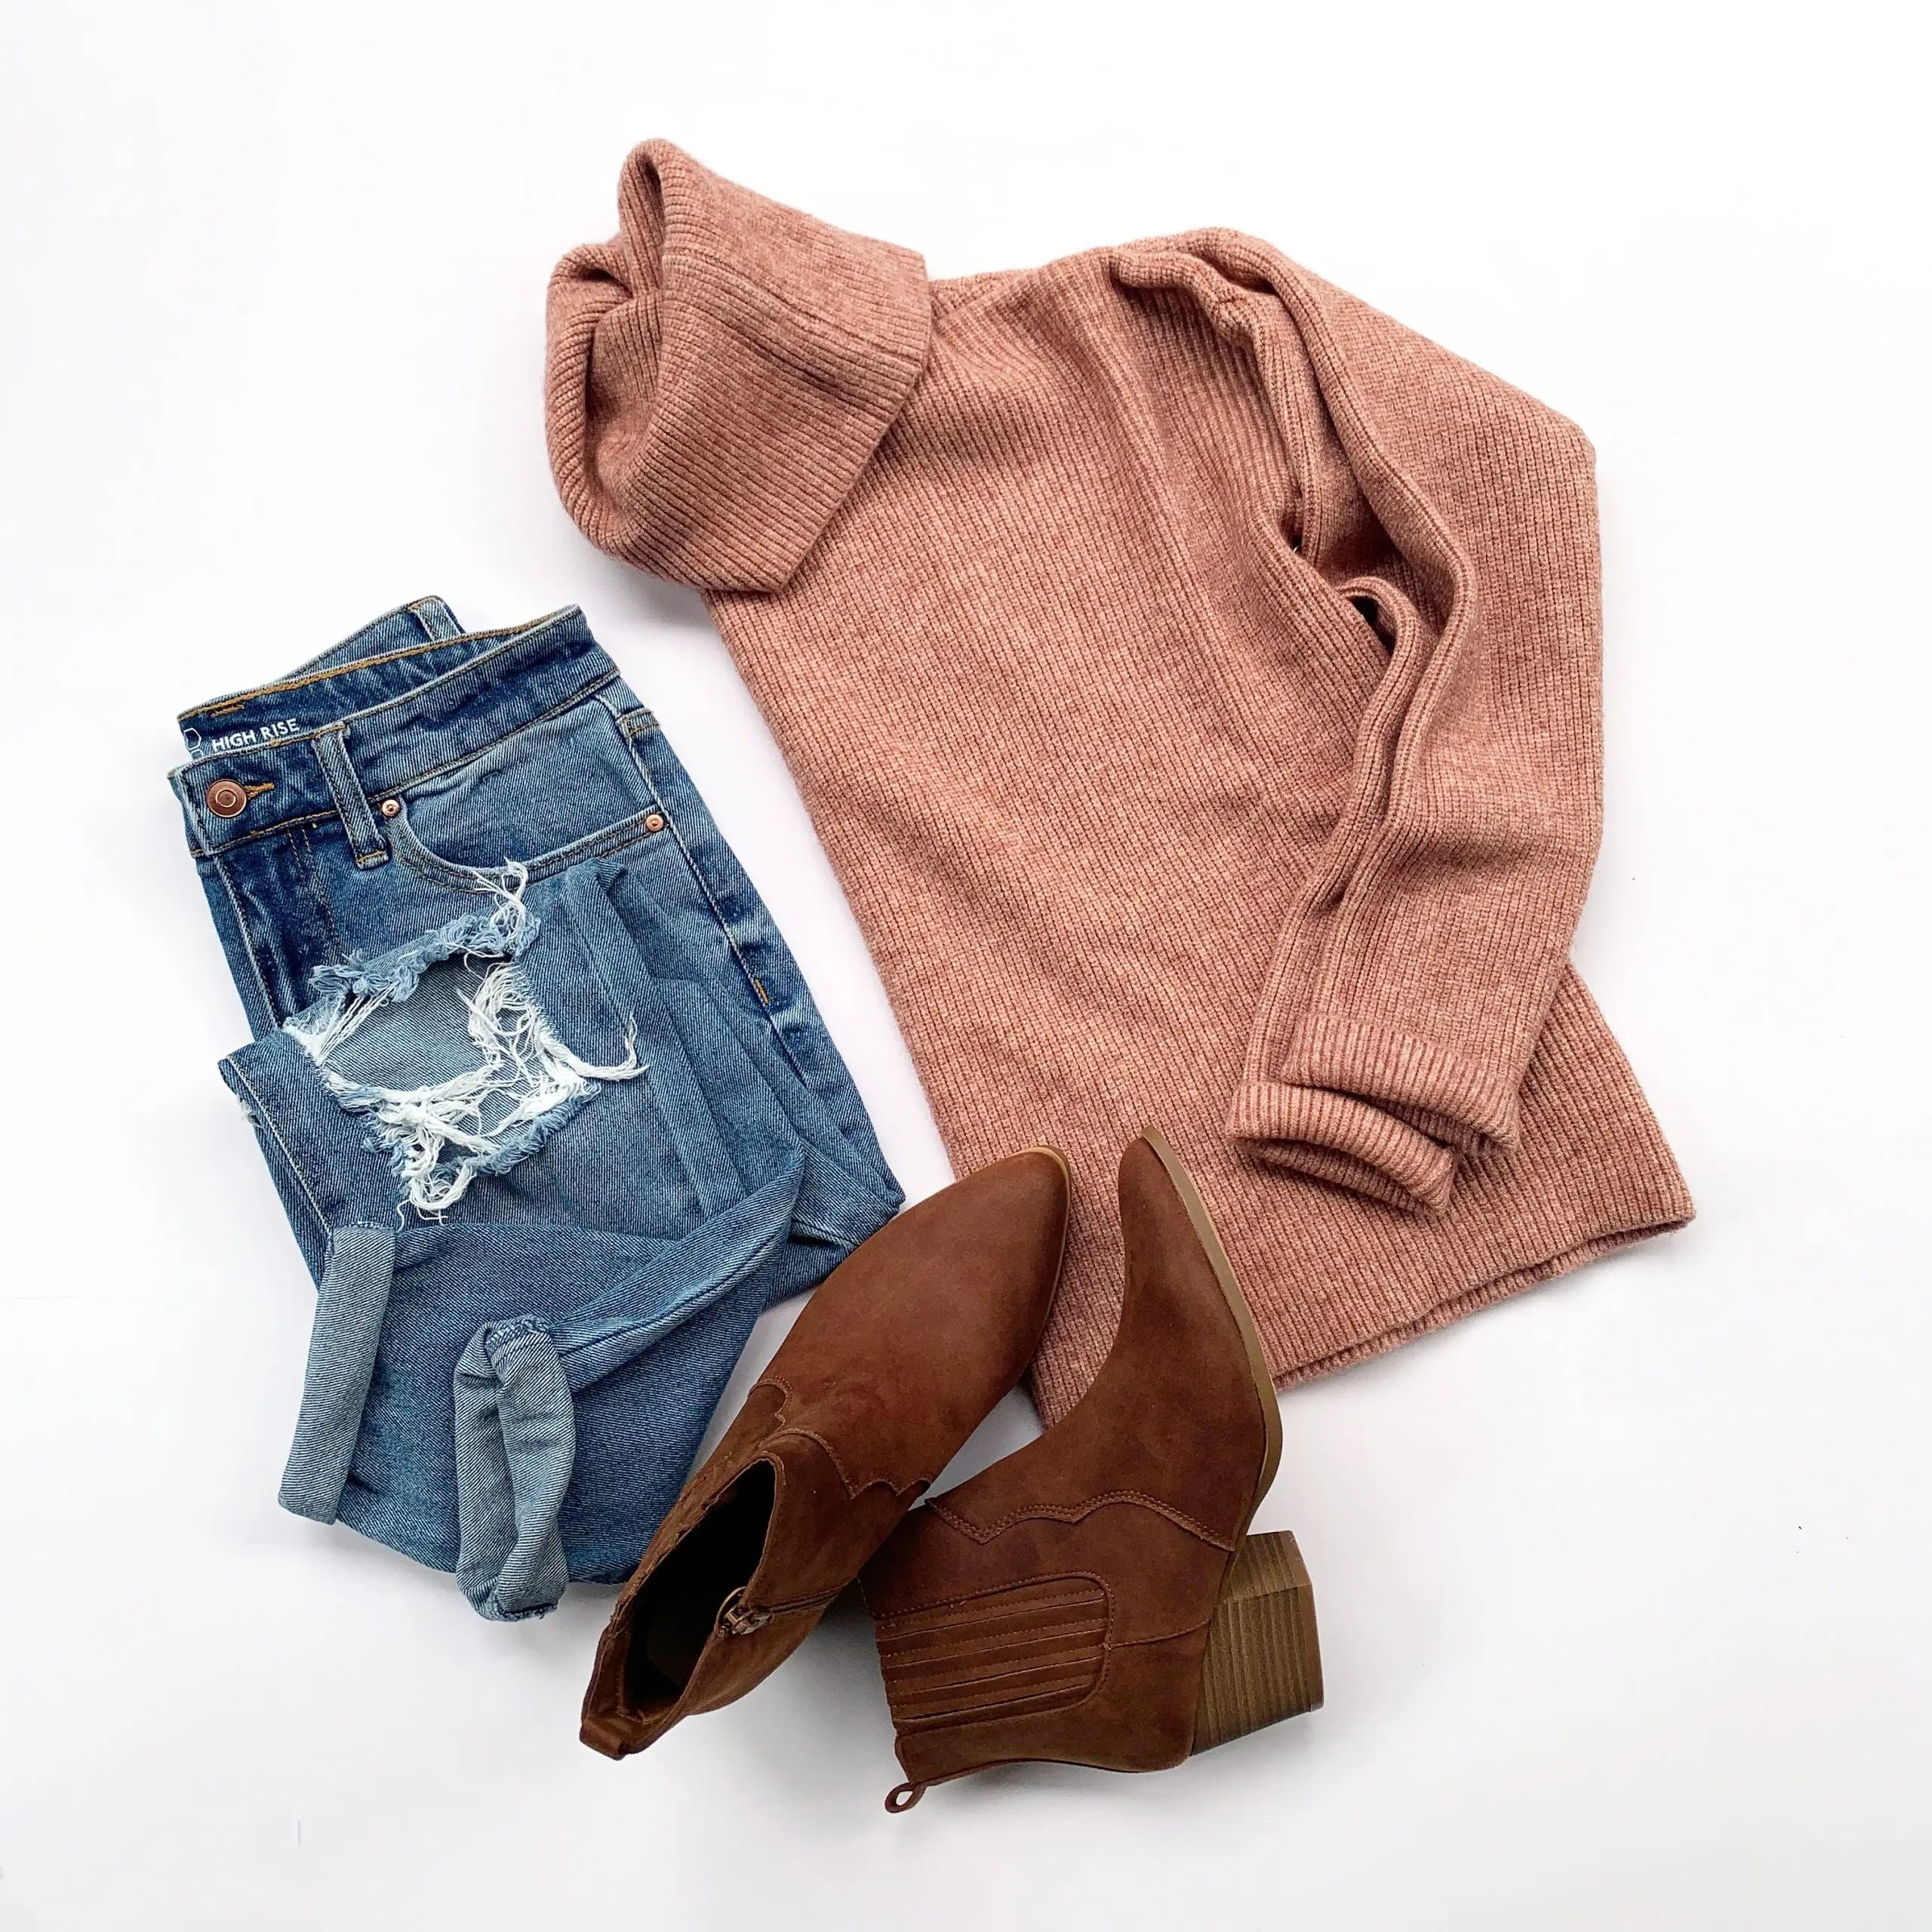 Dreamers by Debut Cowl Neck Sweater, No Boundaries Mom Jeans, and Time and Tru Western Bootie